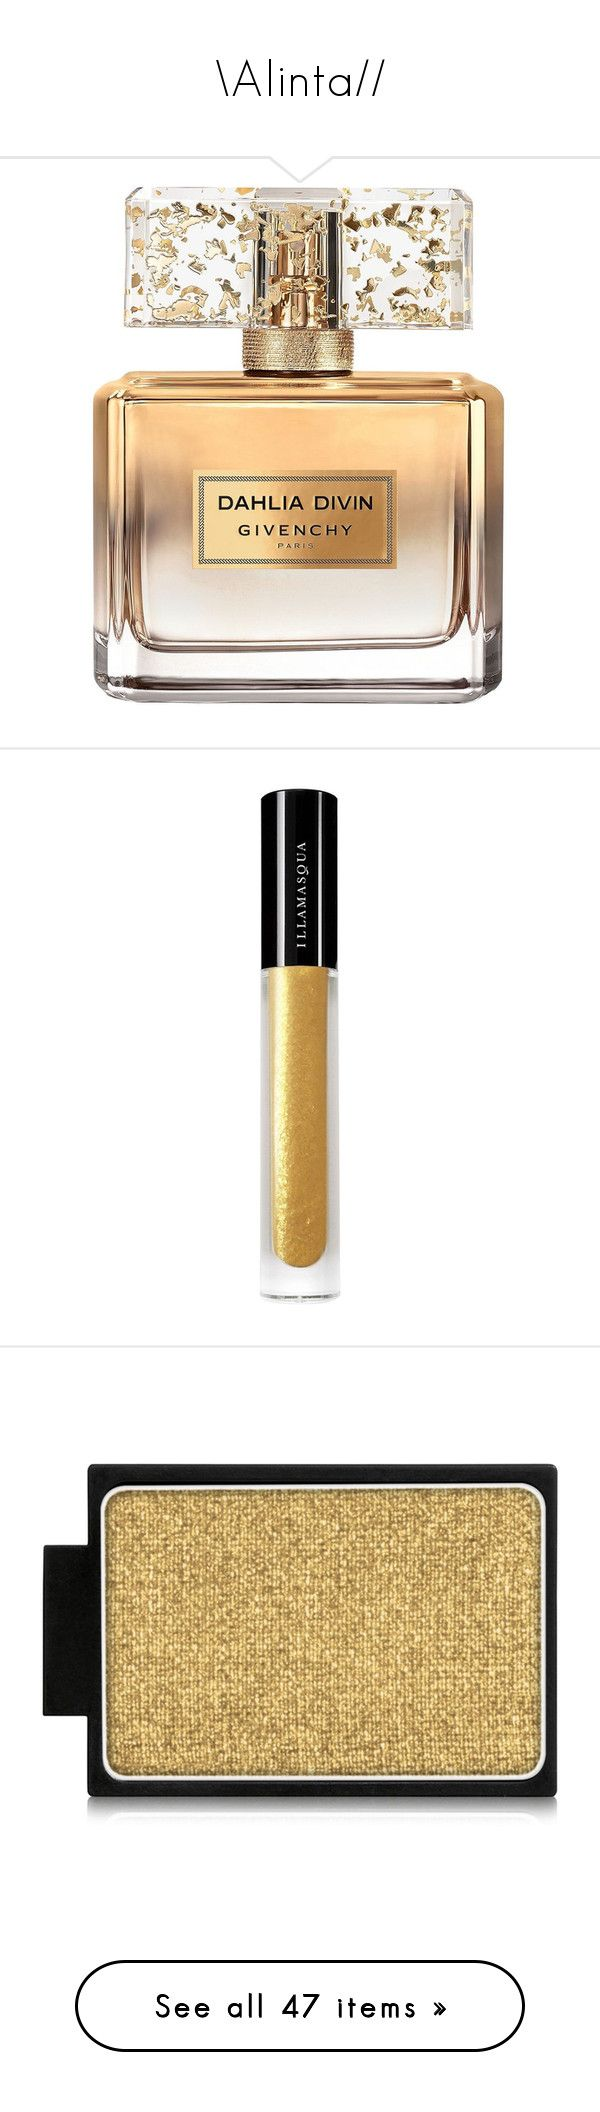 """"""\Alinta//"""" by delicatesnail ❤ liked on Polyvore featuring beauty products, fragrance, perfume, makeup, beauty, fillers, givenchy, givenchy fragrance, givenchy perfume and parfum fragrance""600|2112|?|en|2|b3fcc18835442a241e5a346b5a84fe59|False|UNLIKELY|0.2909848093986511